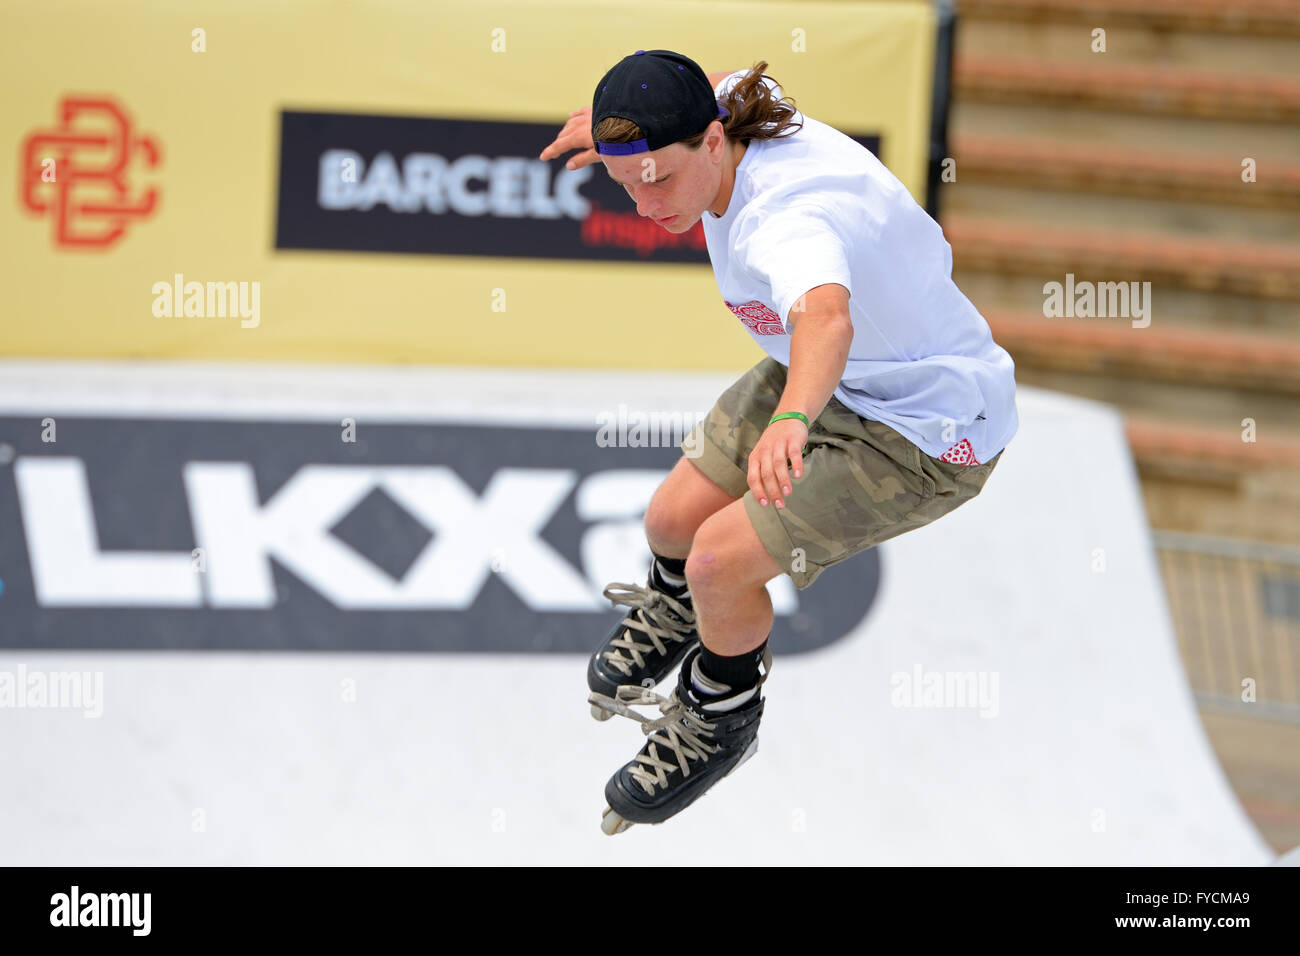 BARCELONA - JUN 28: A professional skater at the Inline